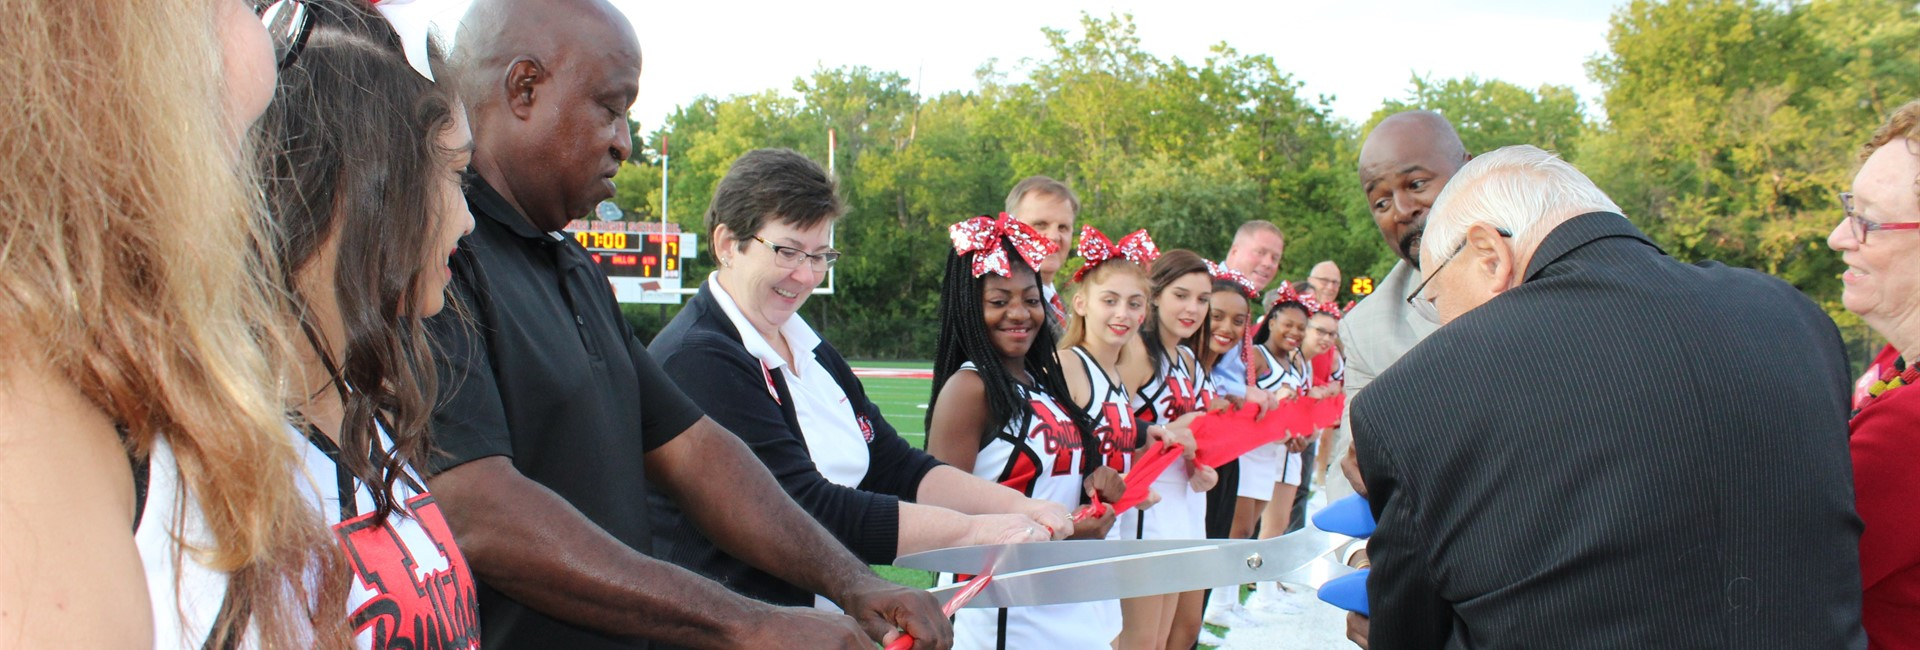 Ribbon Cutting for New Field